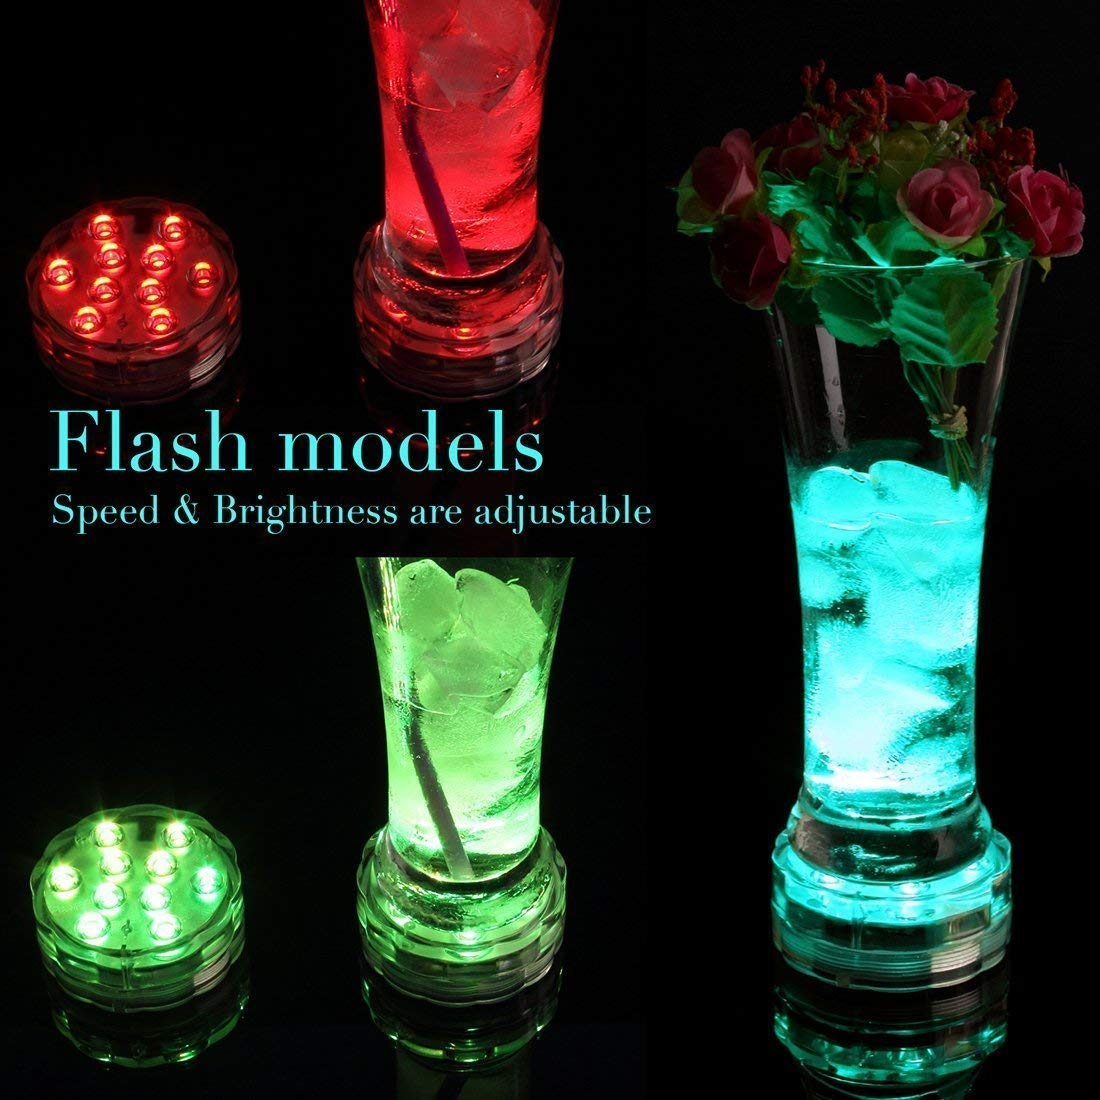 LETOUR RGB Submersible LED Lights Decorative Lights IP68 Waterproof Multi Color Changing Fairy Lights 2.8In 4Packs with 4/×24Key Remote Control for Aquarium Vase Base Pond Wedding Halloween Party